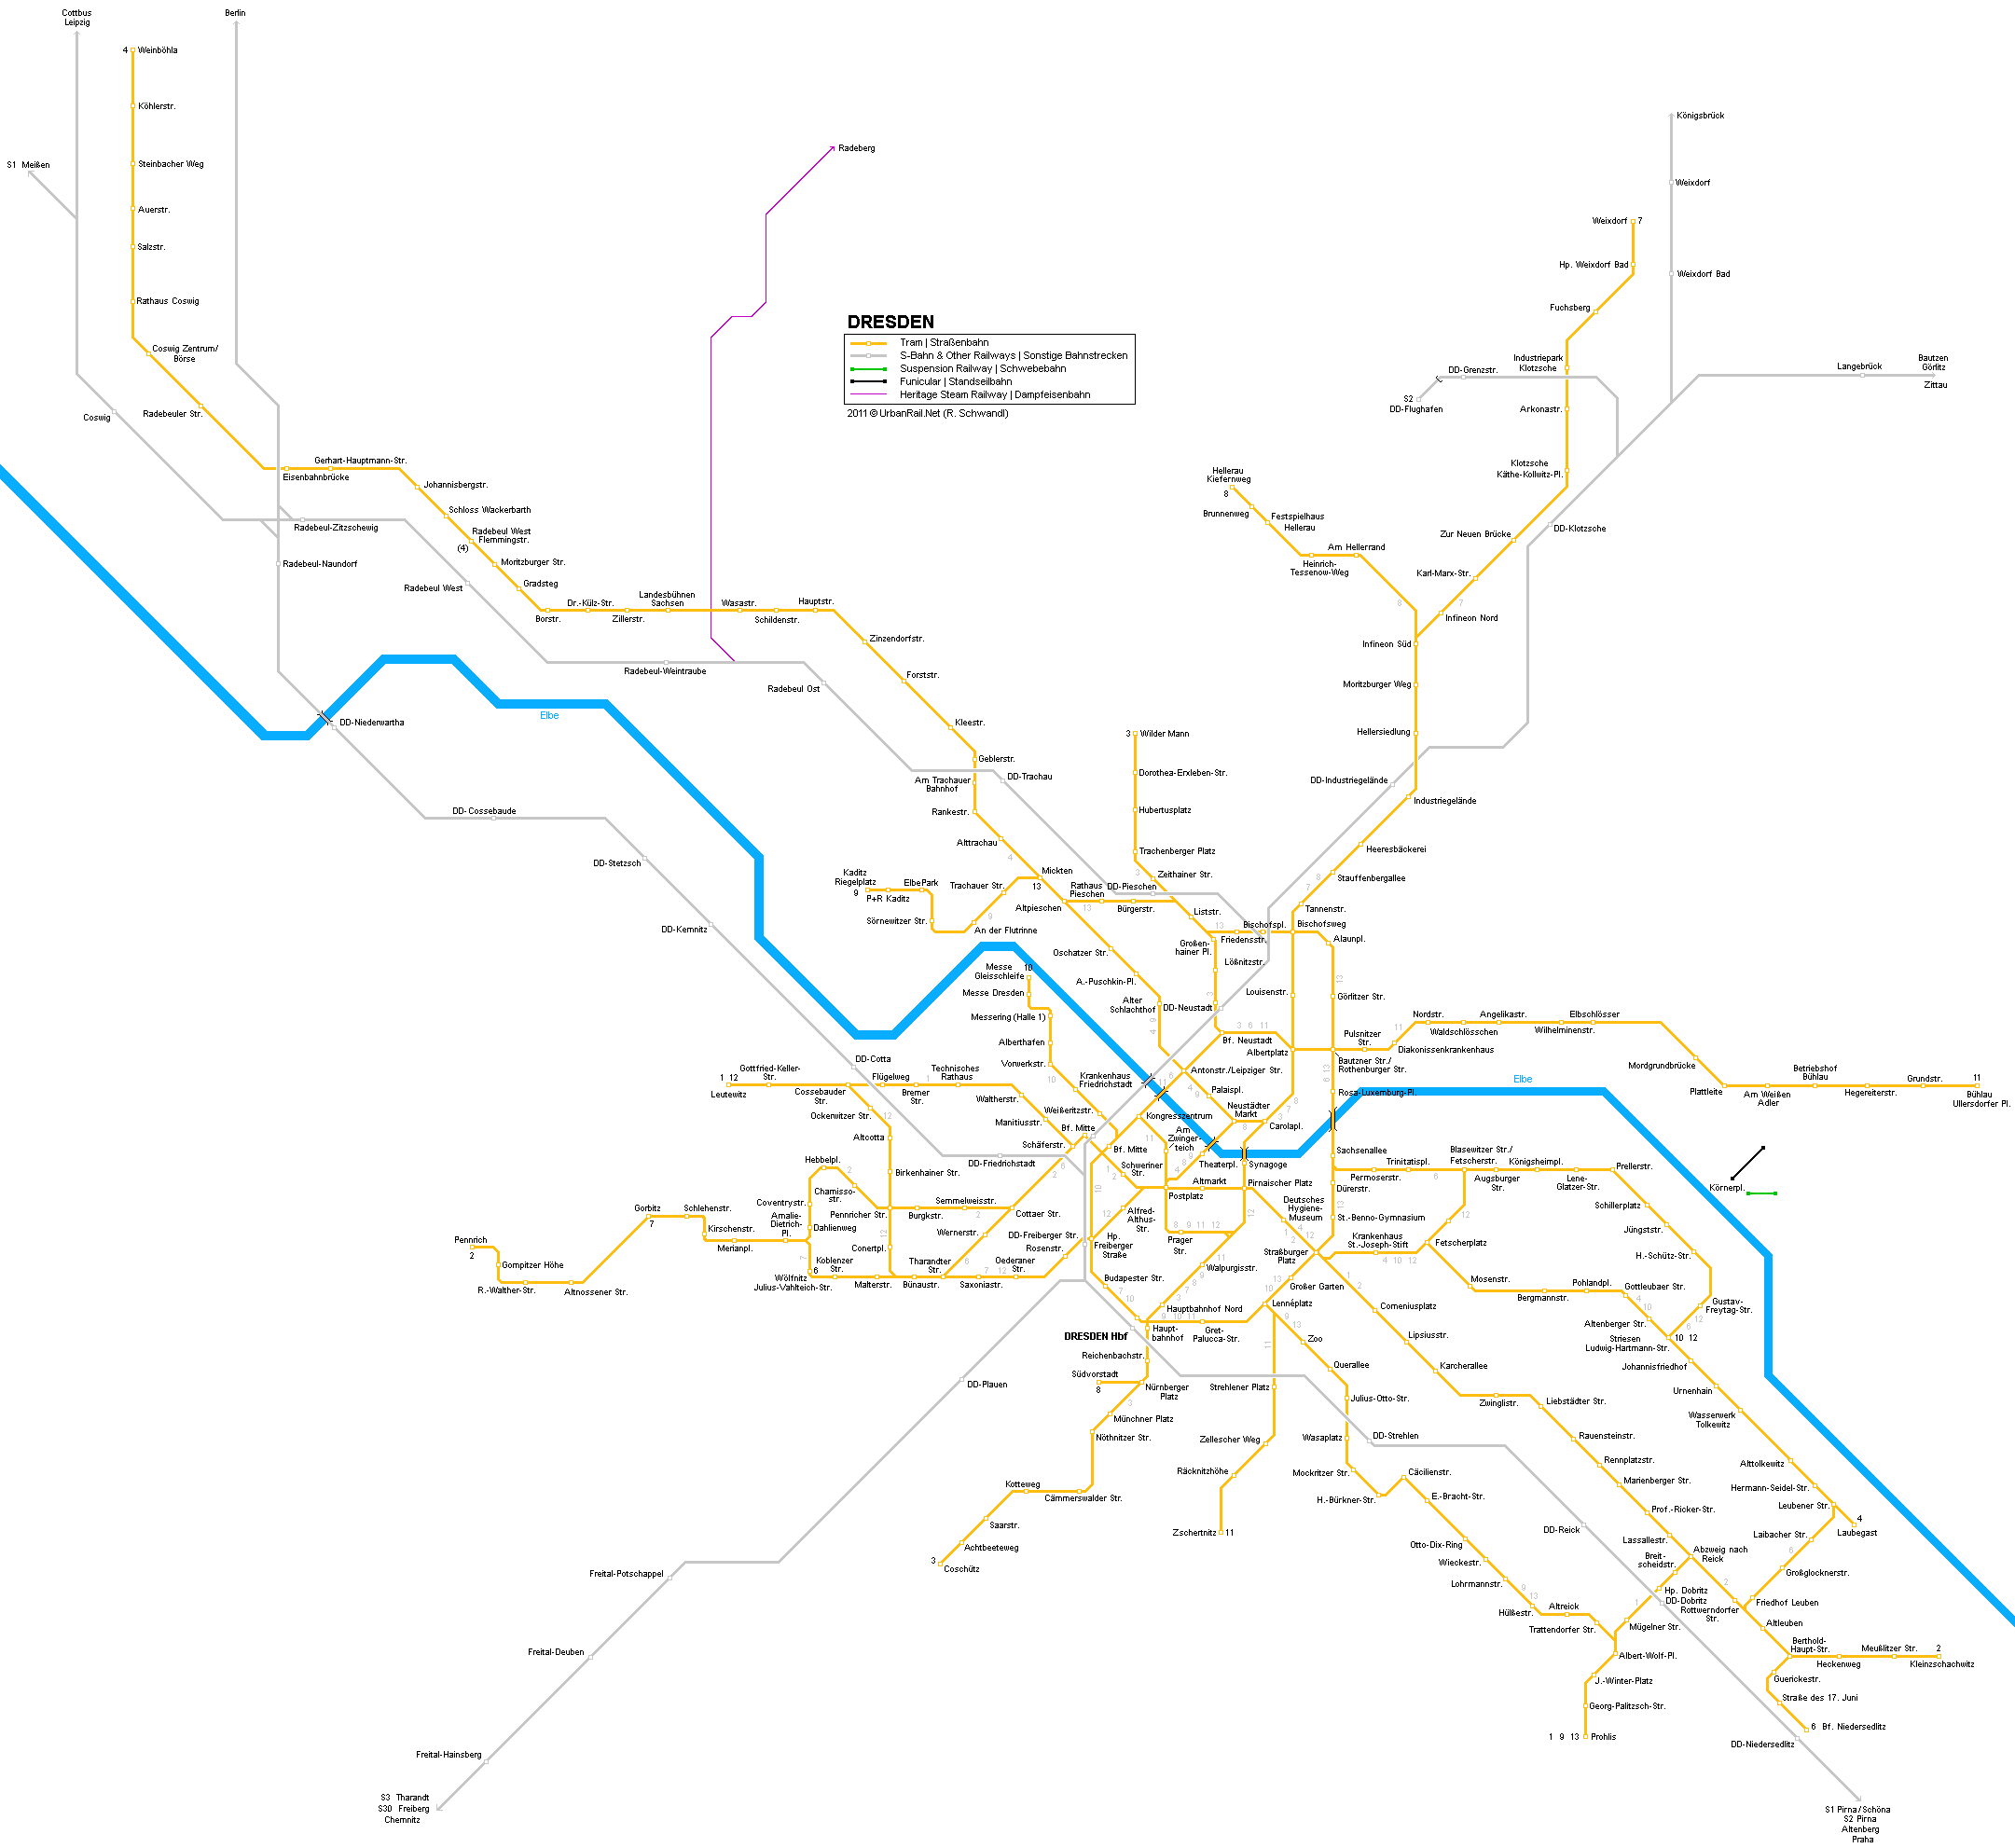 Tram map of Dresden